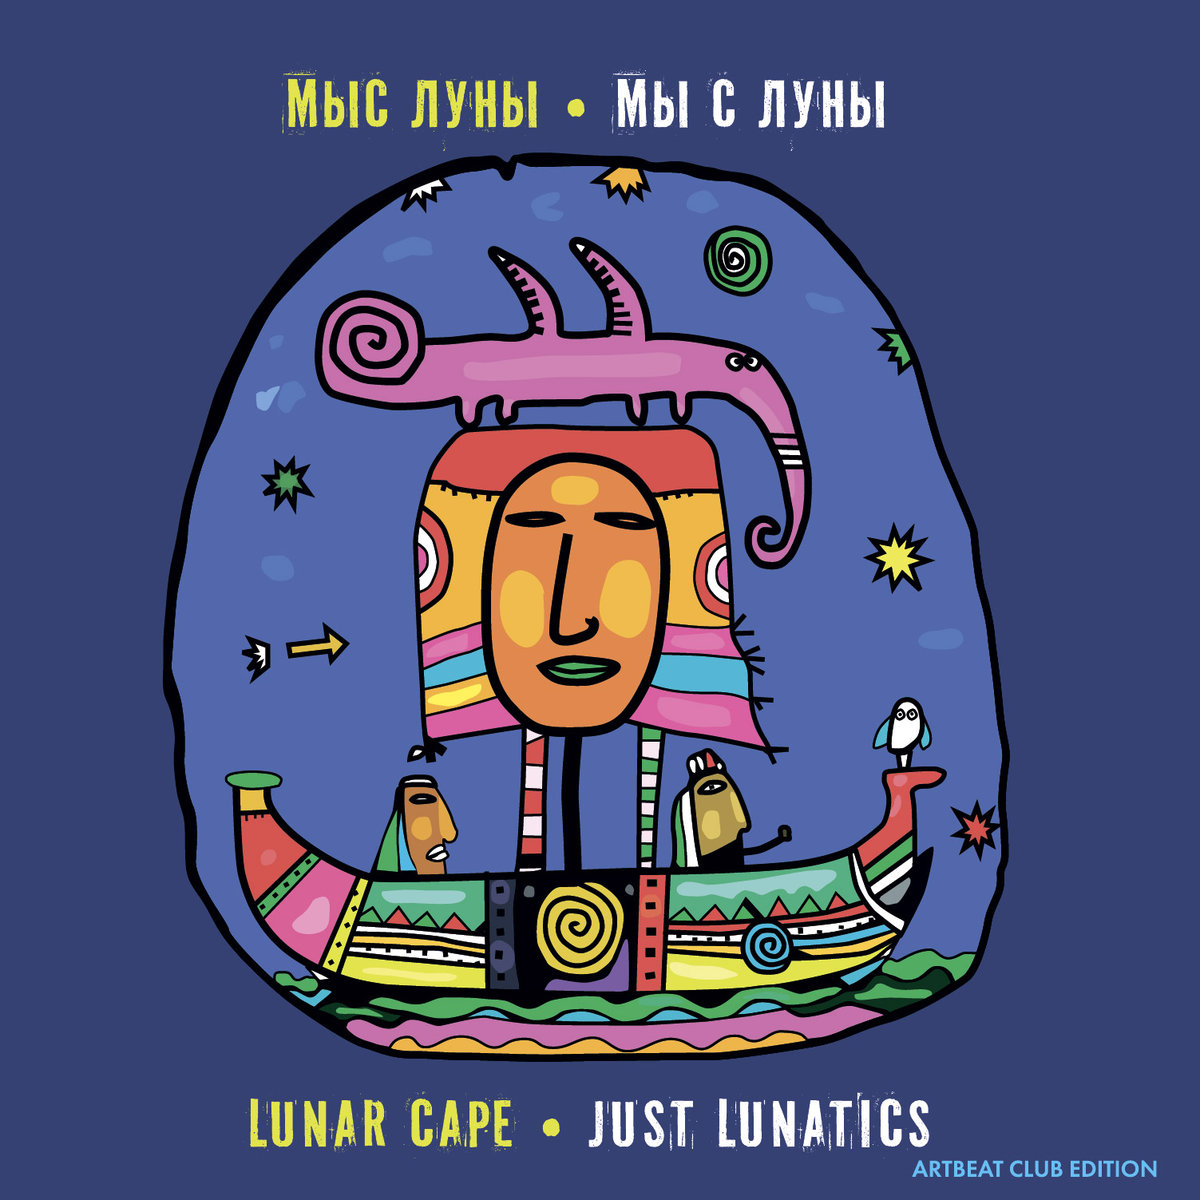 Lunar Cape - Dudki @ 'Just Lunatics' album (jazz fusion, soundtrack)